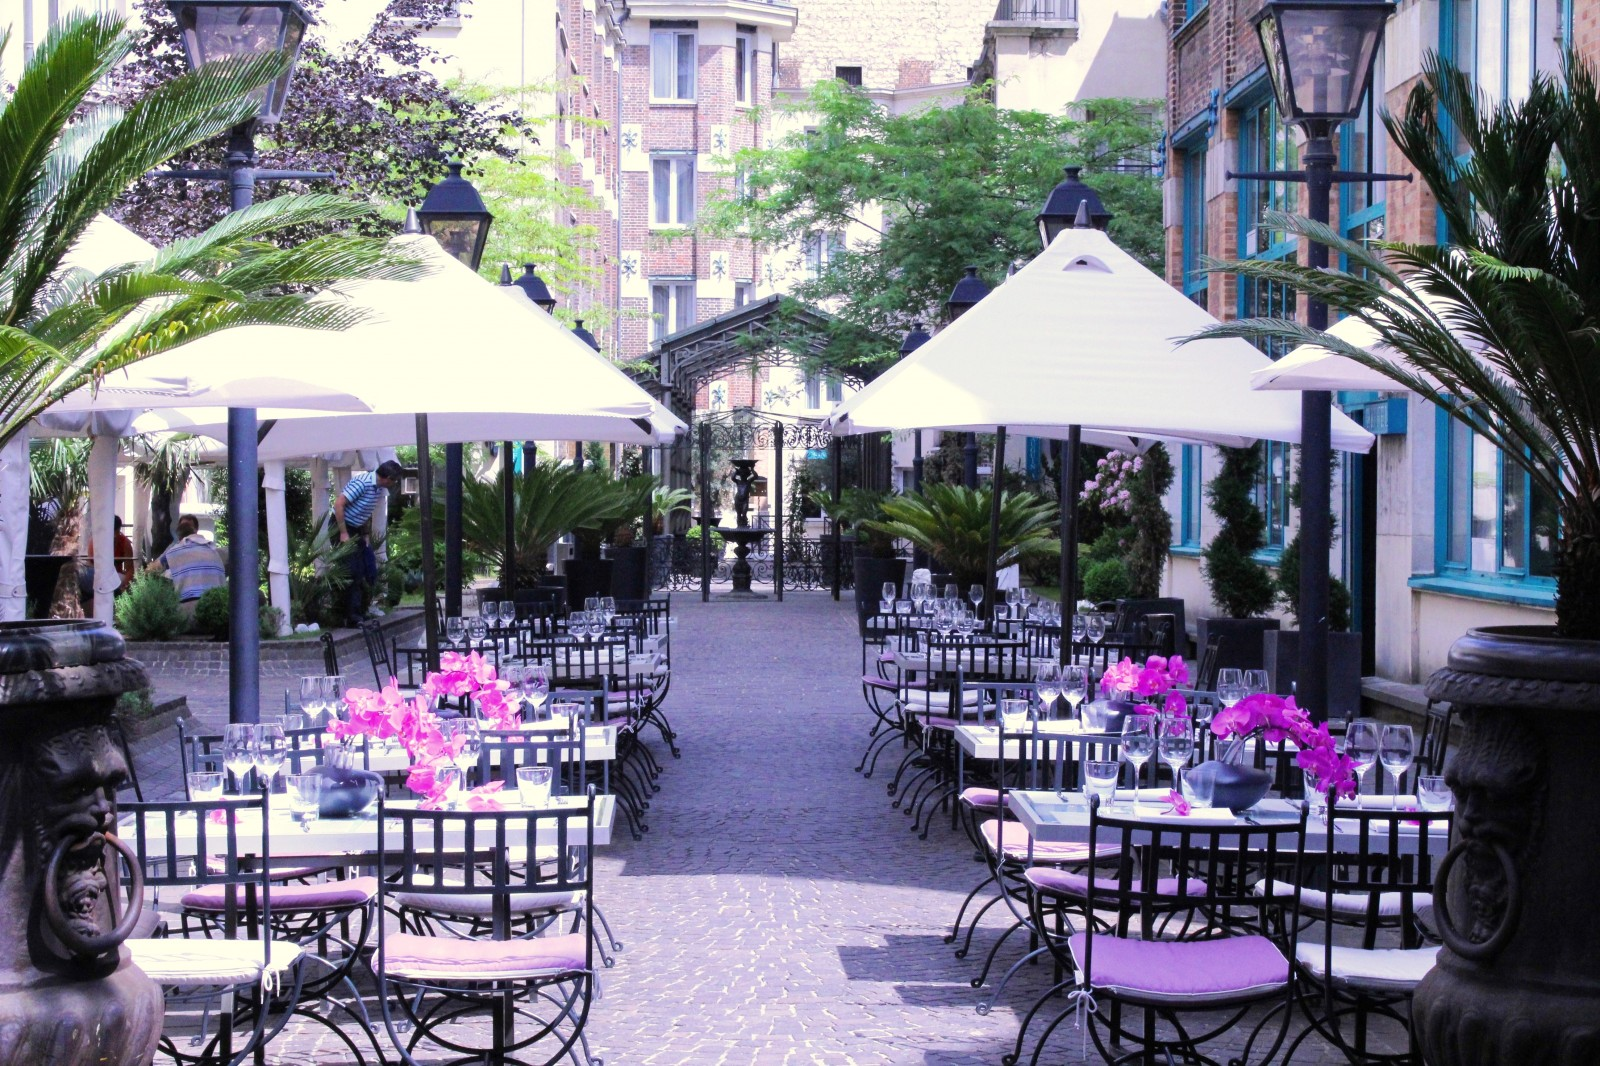 Les jardins du marais ouverture de la plus grande terrasse cach e de paris dandy magazine for Plus grand jardin de paris